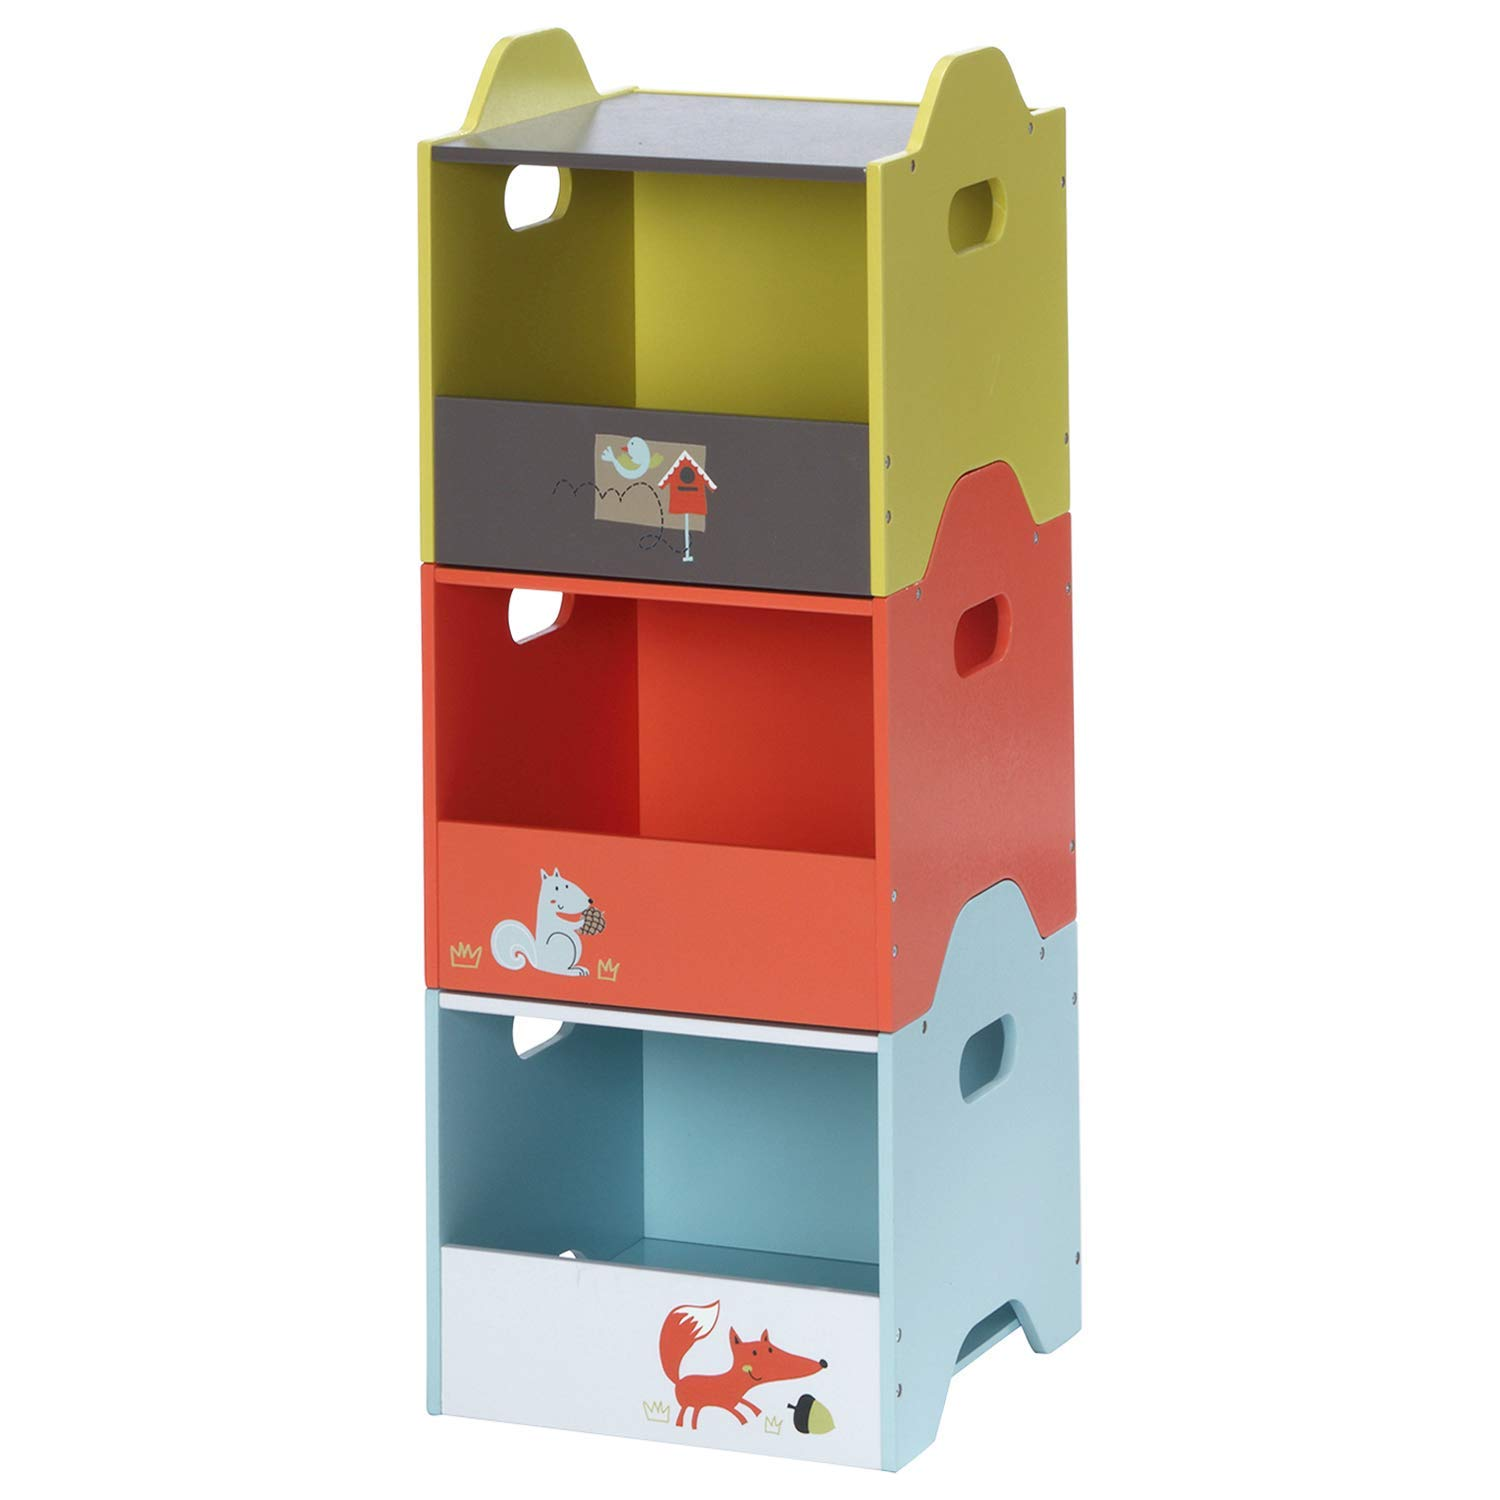 labebe - Storage Bins, Toy Wooden Storage Cubes Box, Kid Toy Organizer and Storage for 1-5 Years Old, 3 Toy Stacking Bins, Cube Useful Stackable Storage Bins, Toy Box Container as Birthday Gift - Fox by labebe